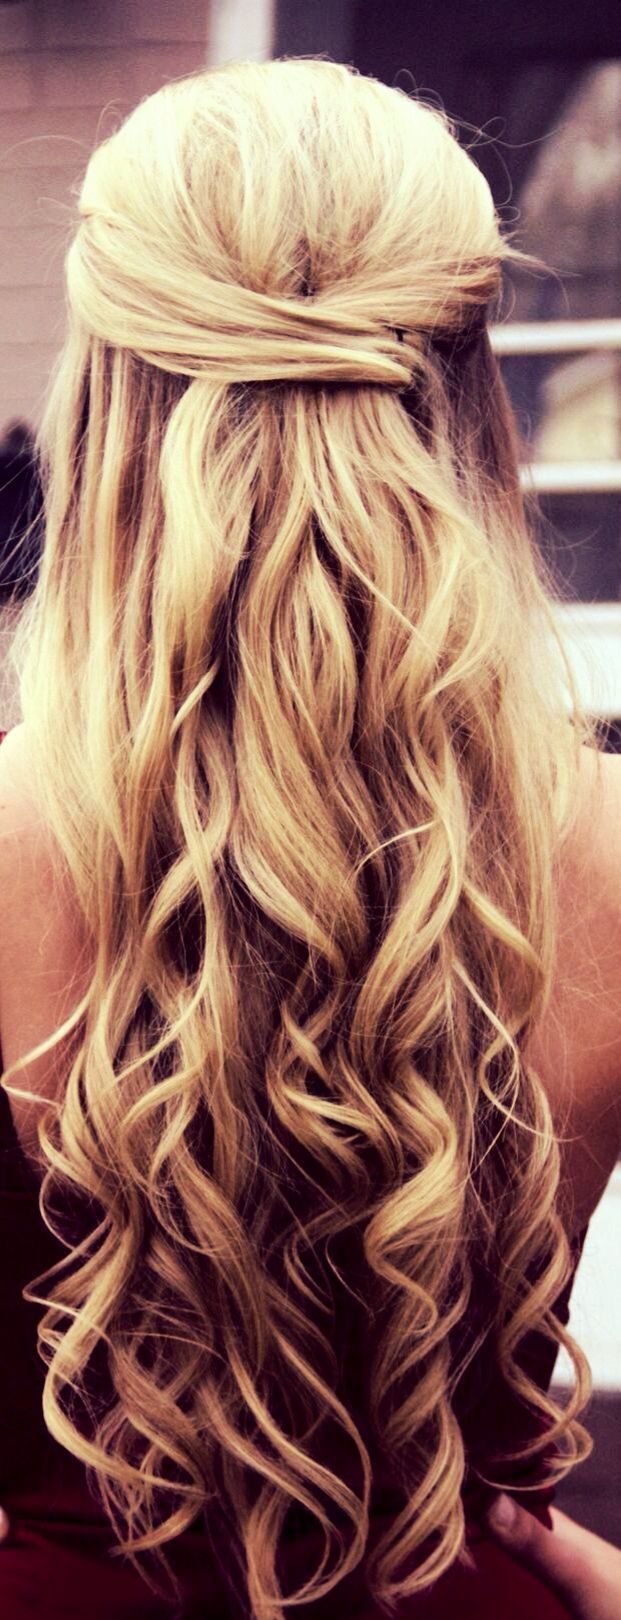 Prom Hairstyles For Thick Hair Best 25 Long Prom Hair Ideas On Pinterest Hair Styles For Prom